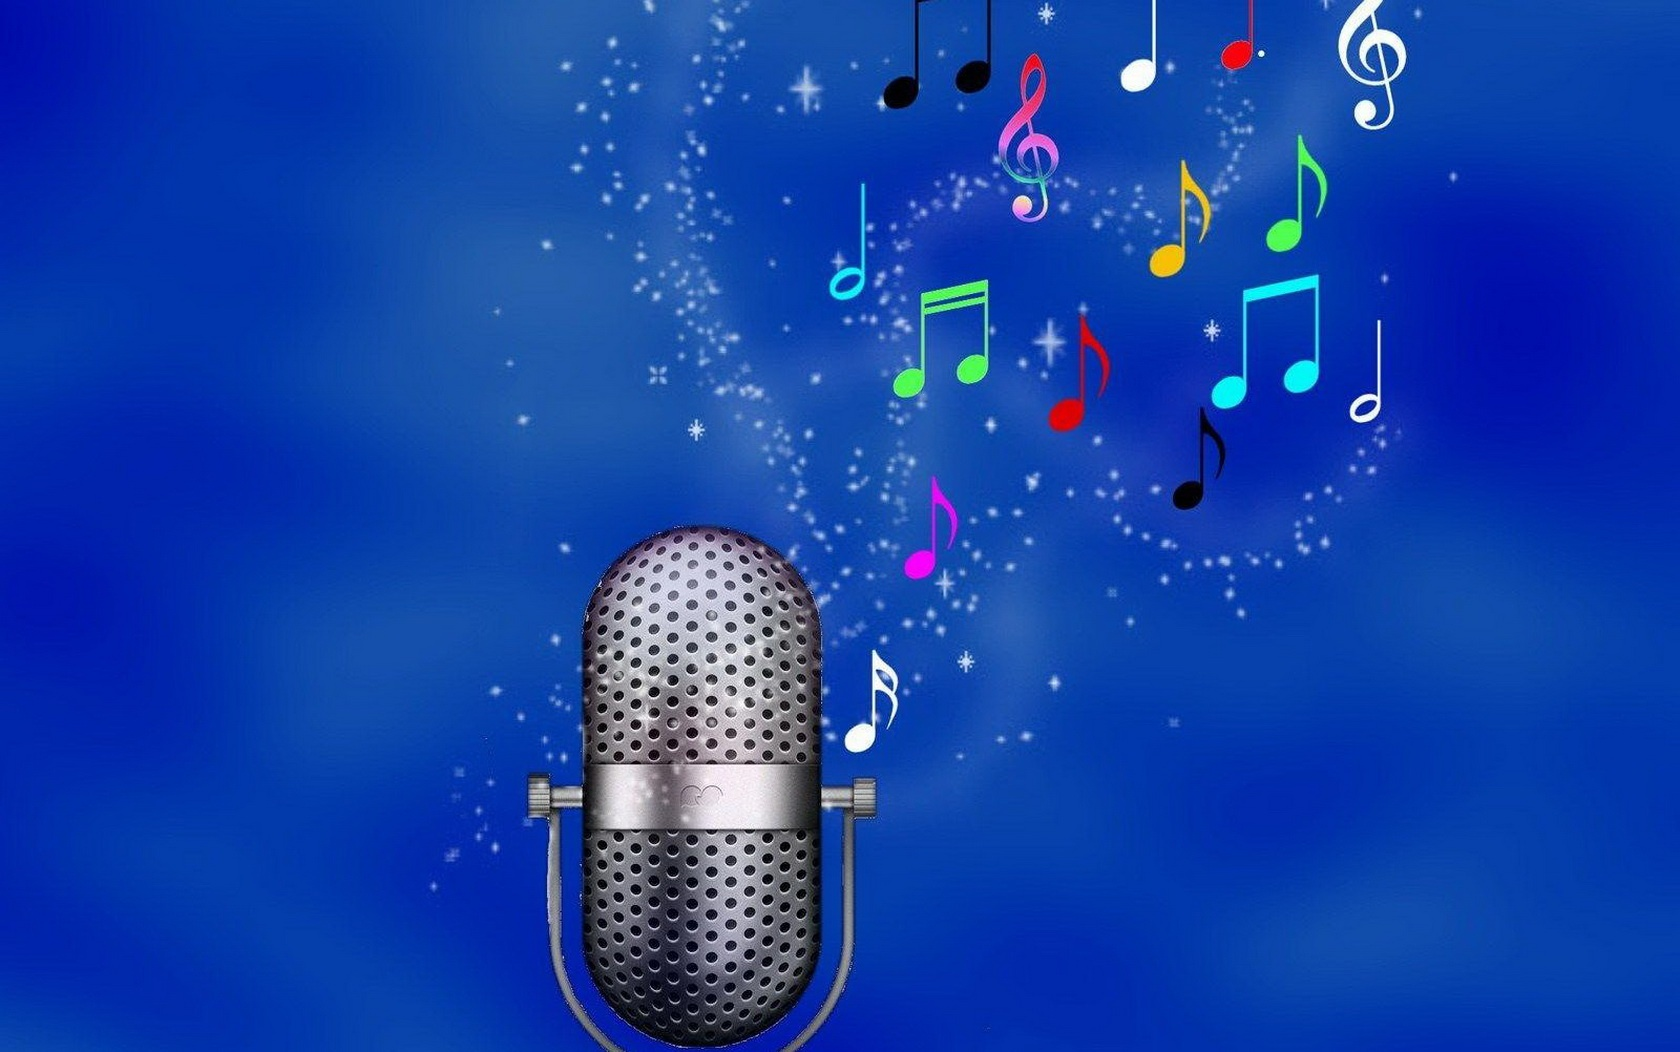 Wallpaper download music - Blue Music Notes Wallpaper Download Music Wallpaper